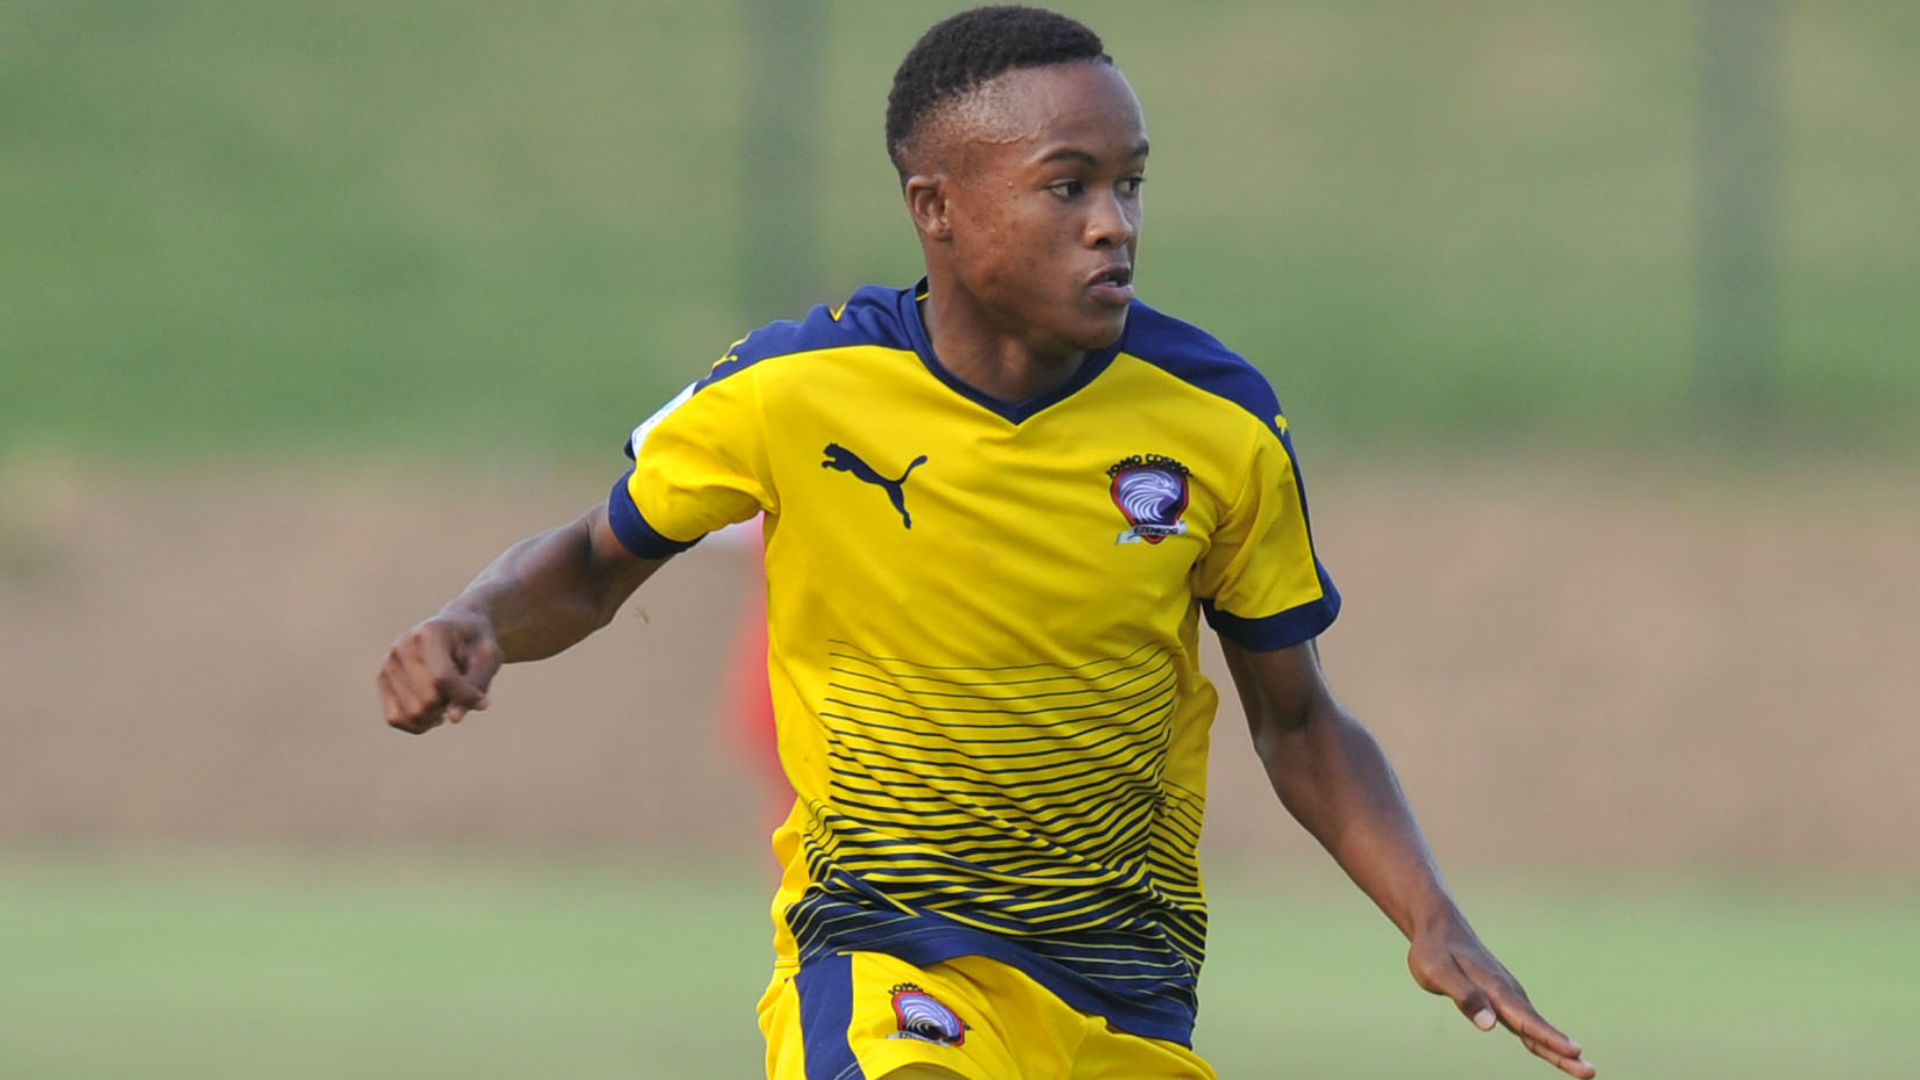 Jomo Cosmos star Tlolane relishes lifetime opportunity to train with FC Barcelona